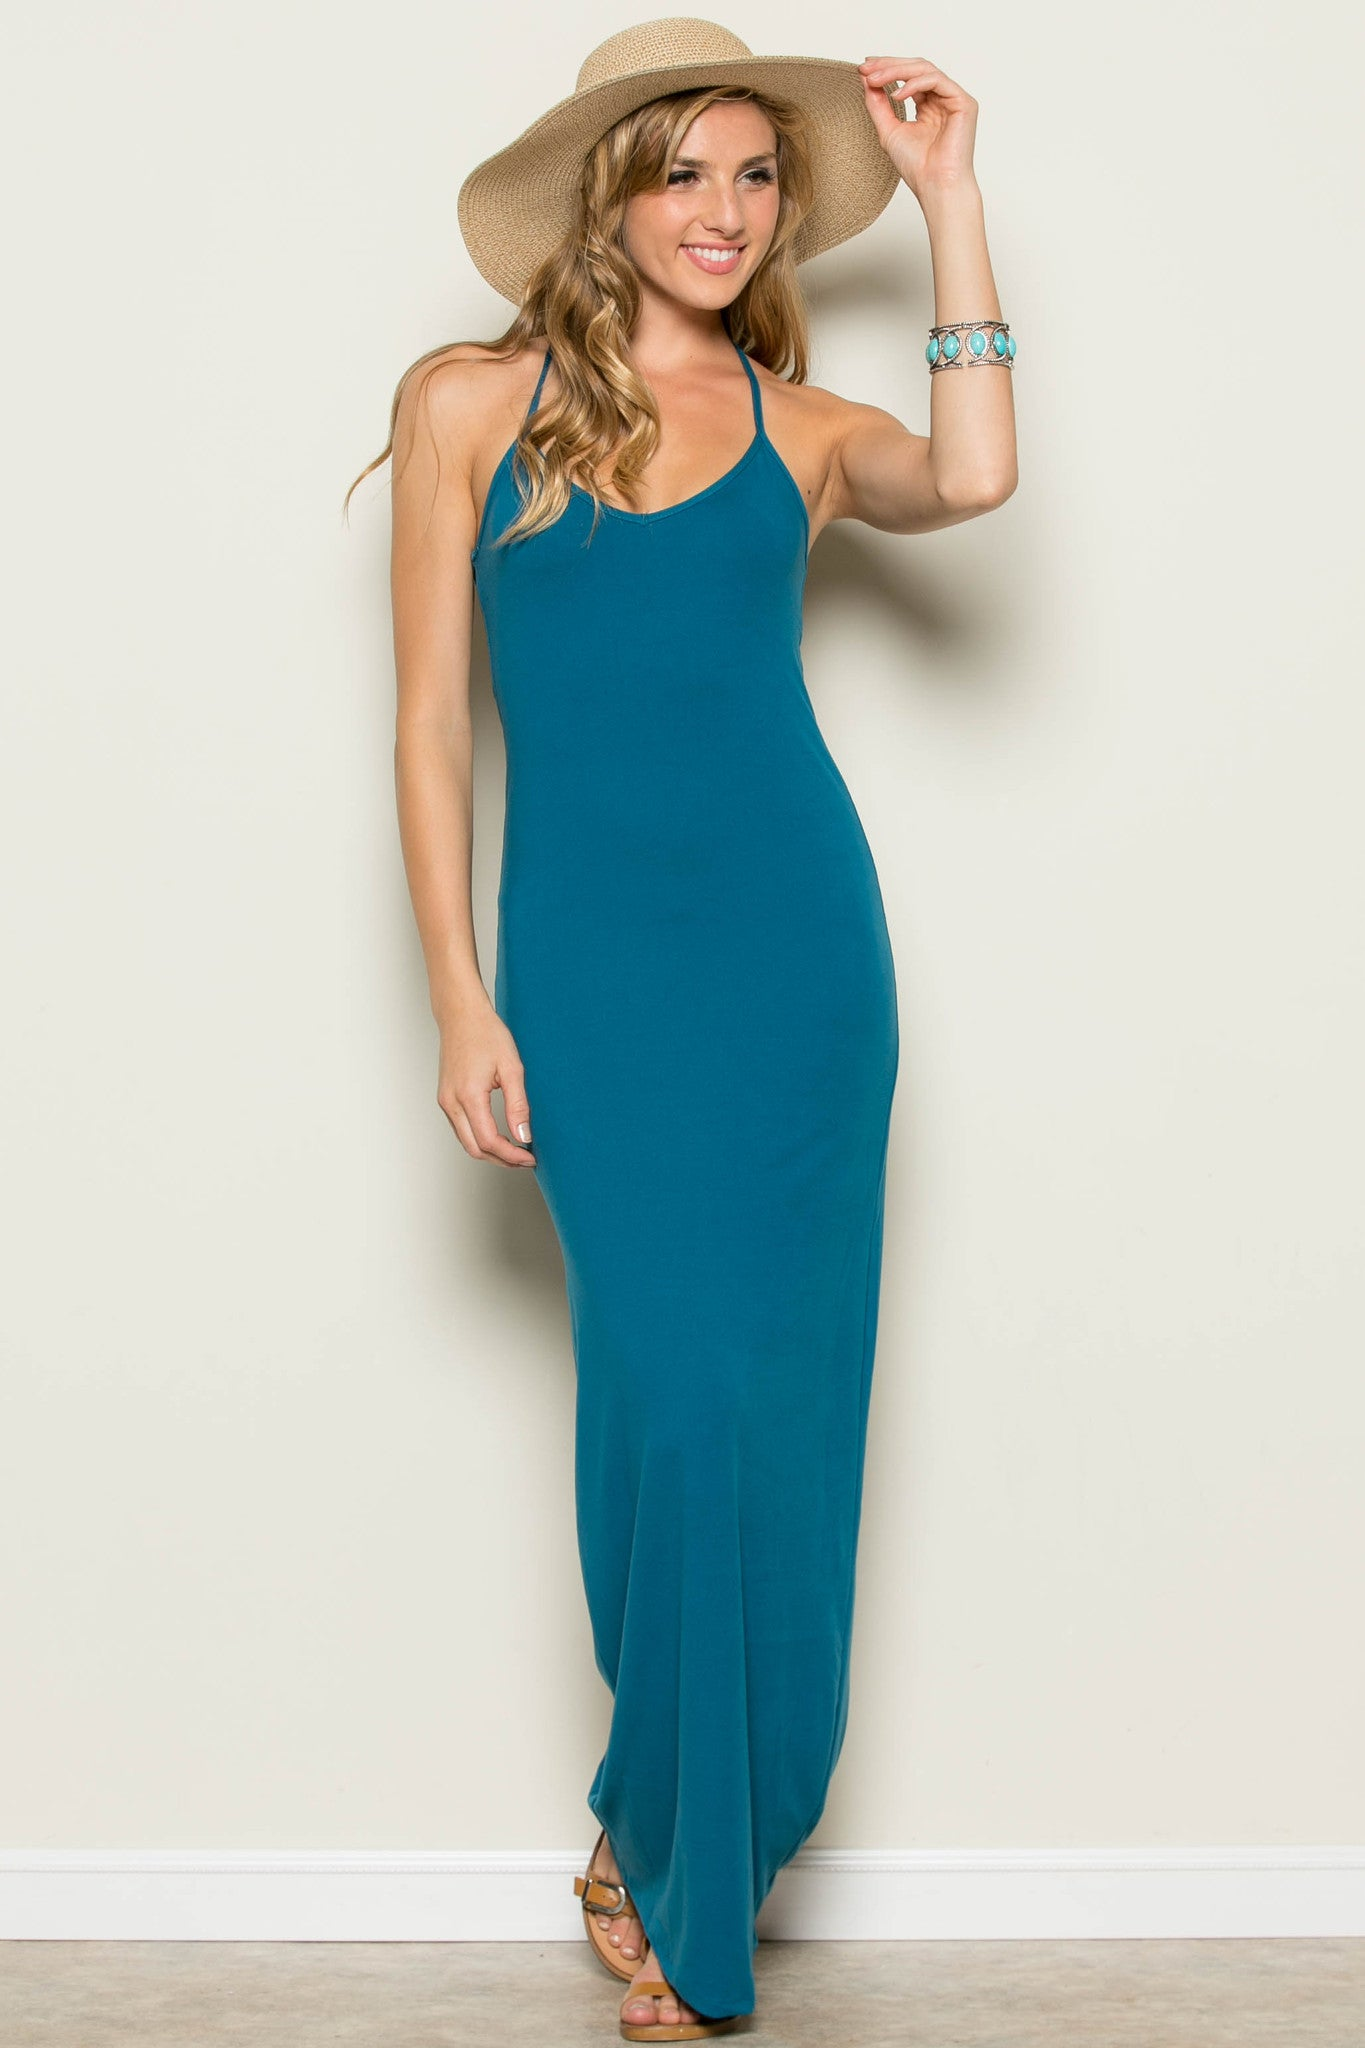 Micro Suede Teal Maxi Dress - Dresses - My Yuccie - 3